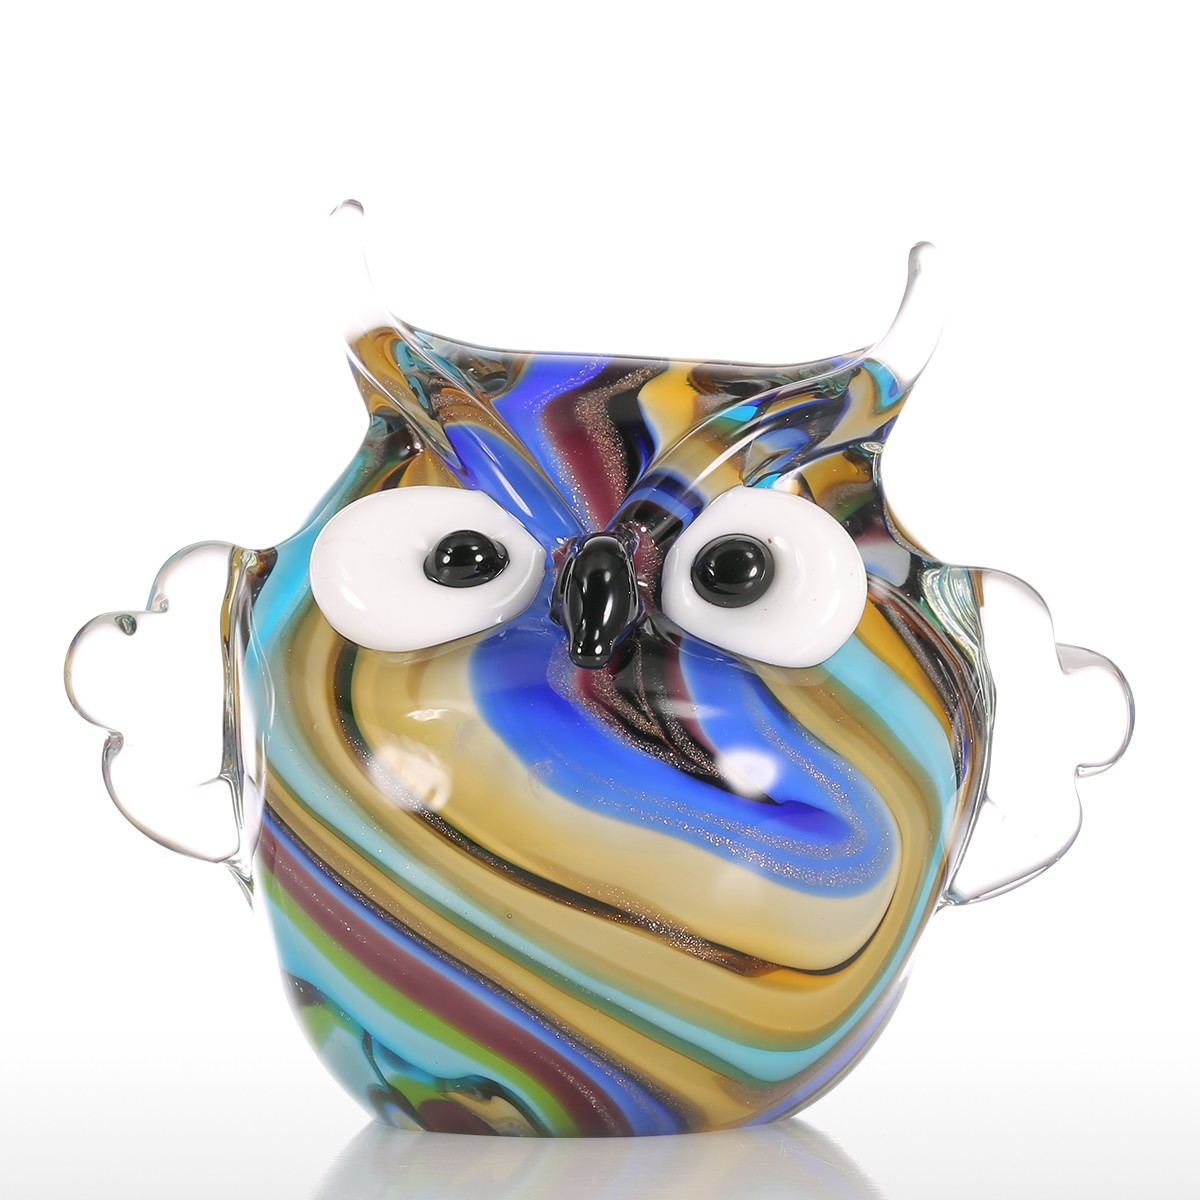 Glass animal ornaments - Tooarts Colorful Owl Gift Glass Ornament Animal Figurine Handblown Home Decor Multicolor Home Decoration Crafts Figurines